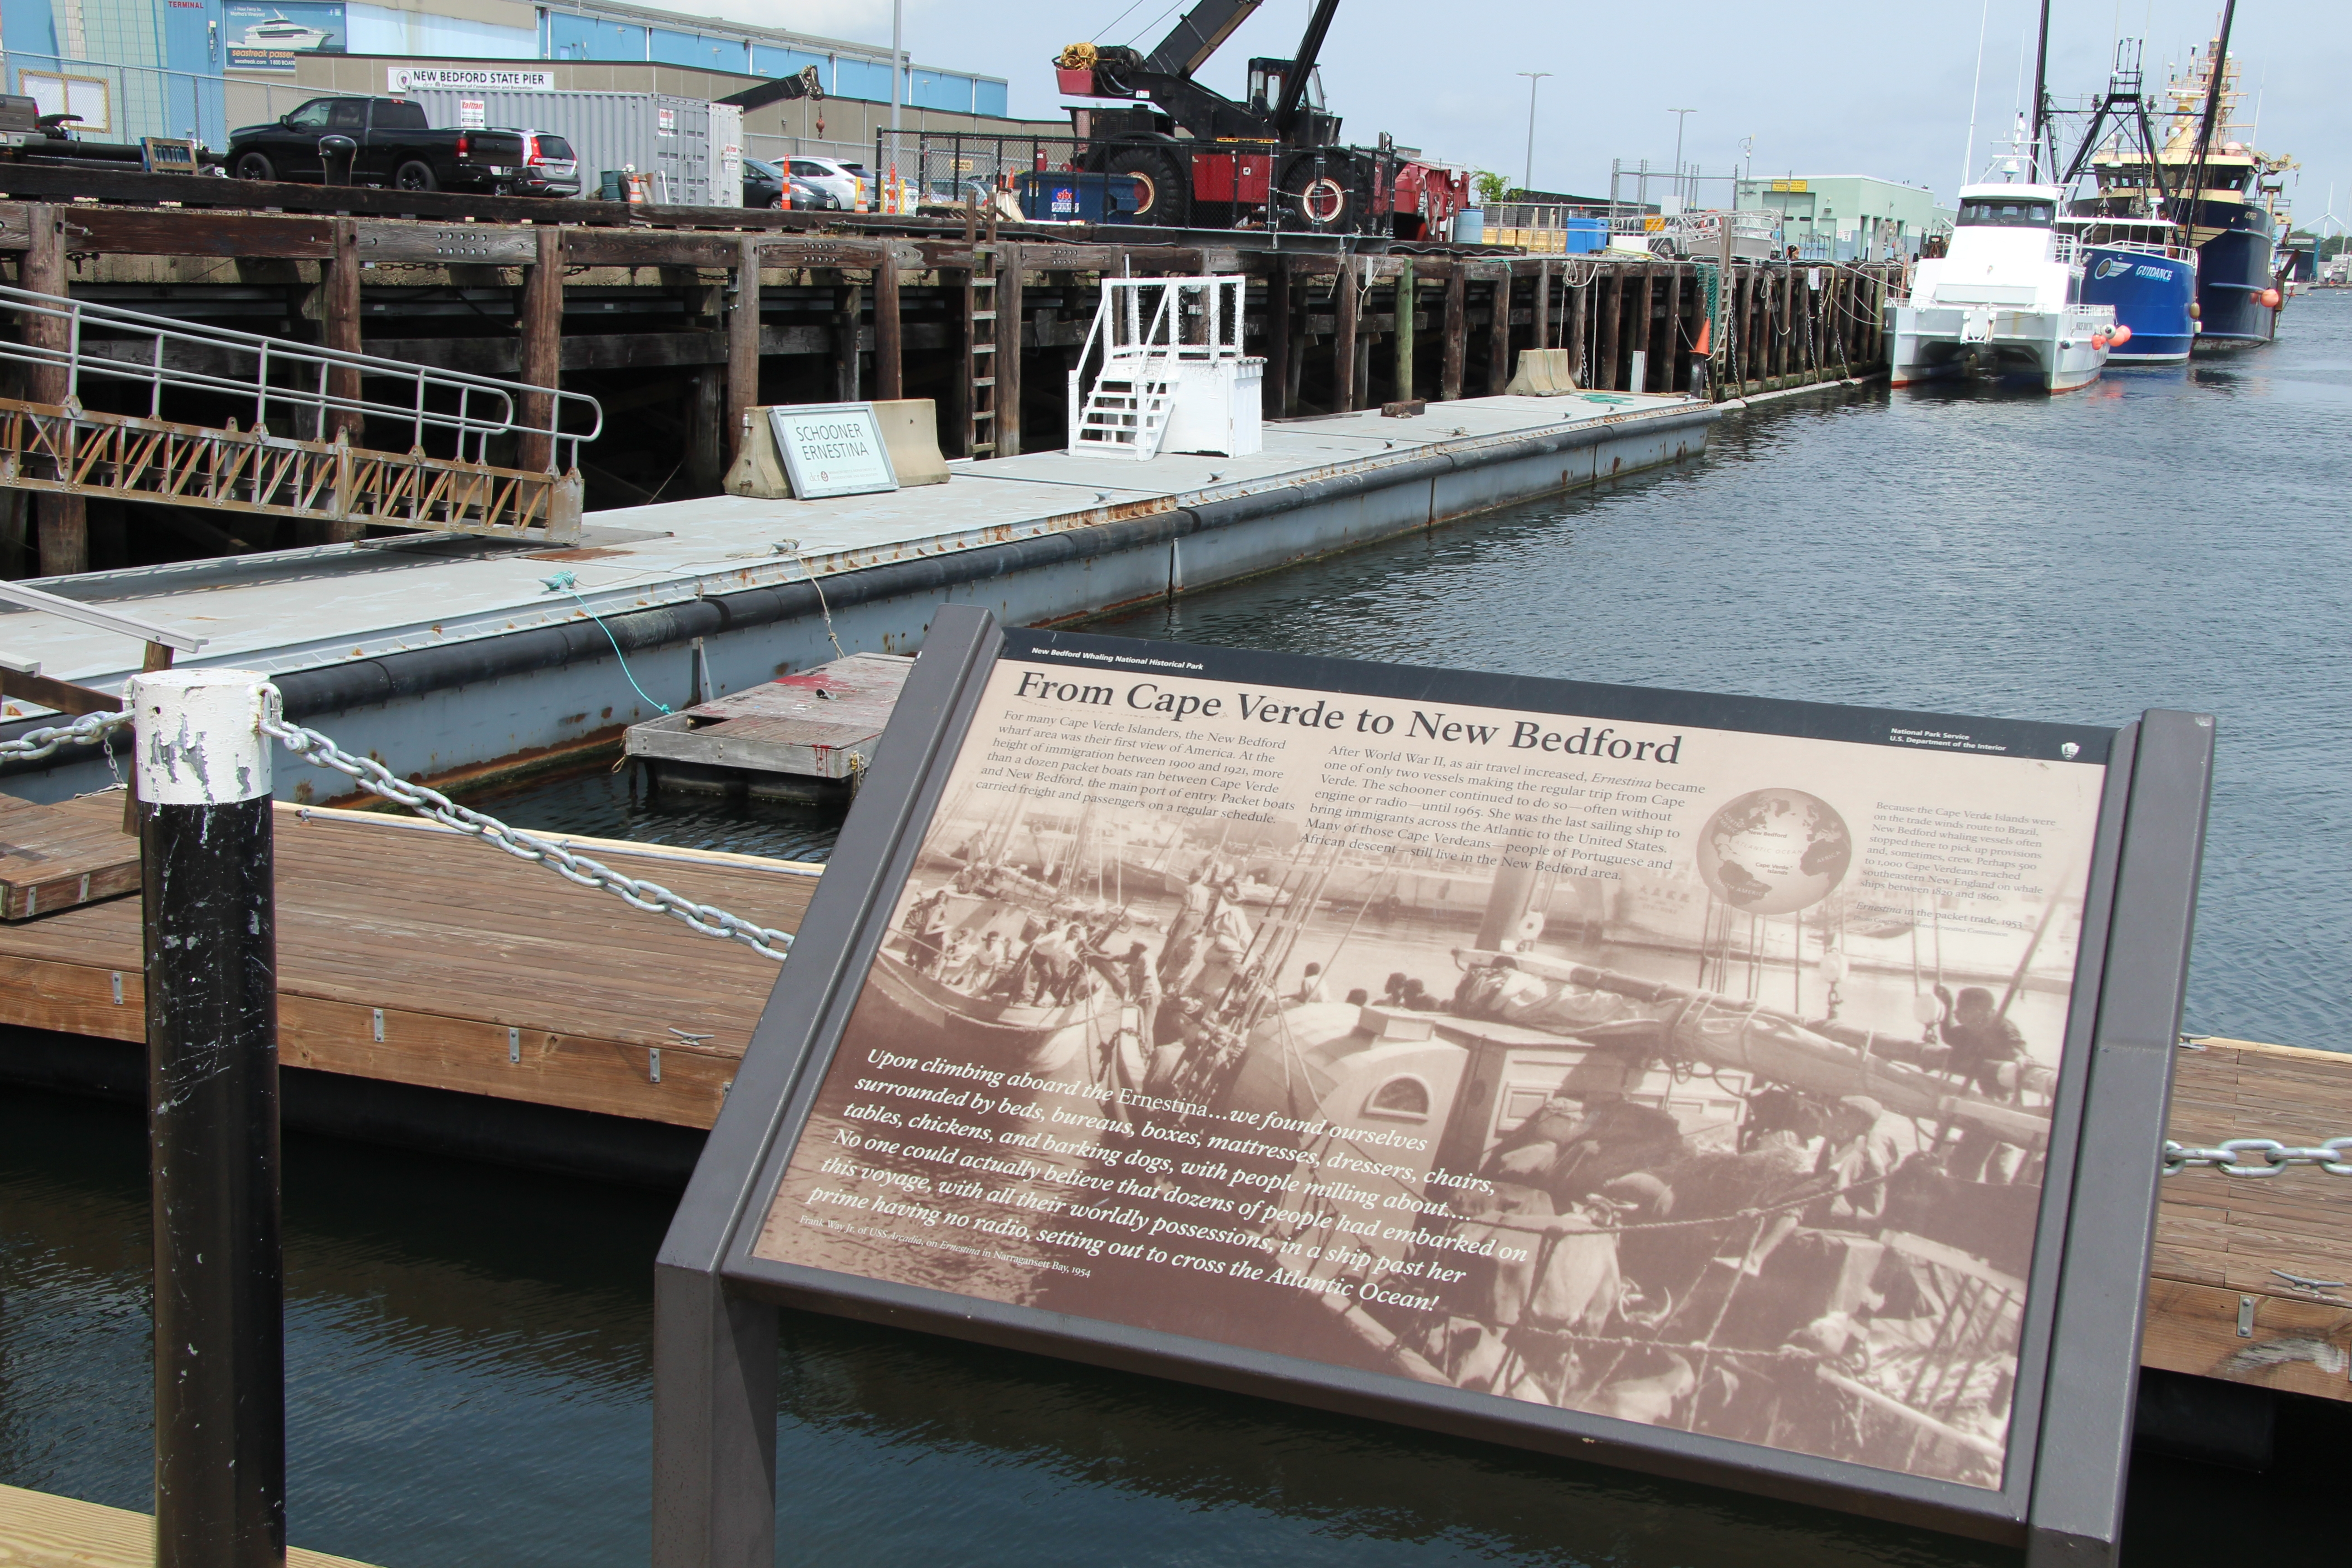 Cape Verde to New Bedford Marker